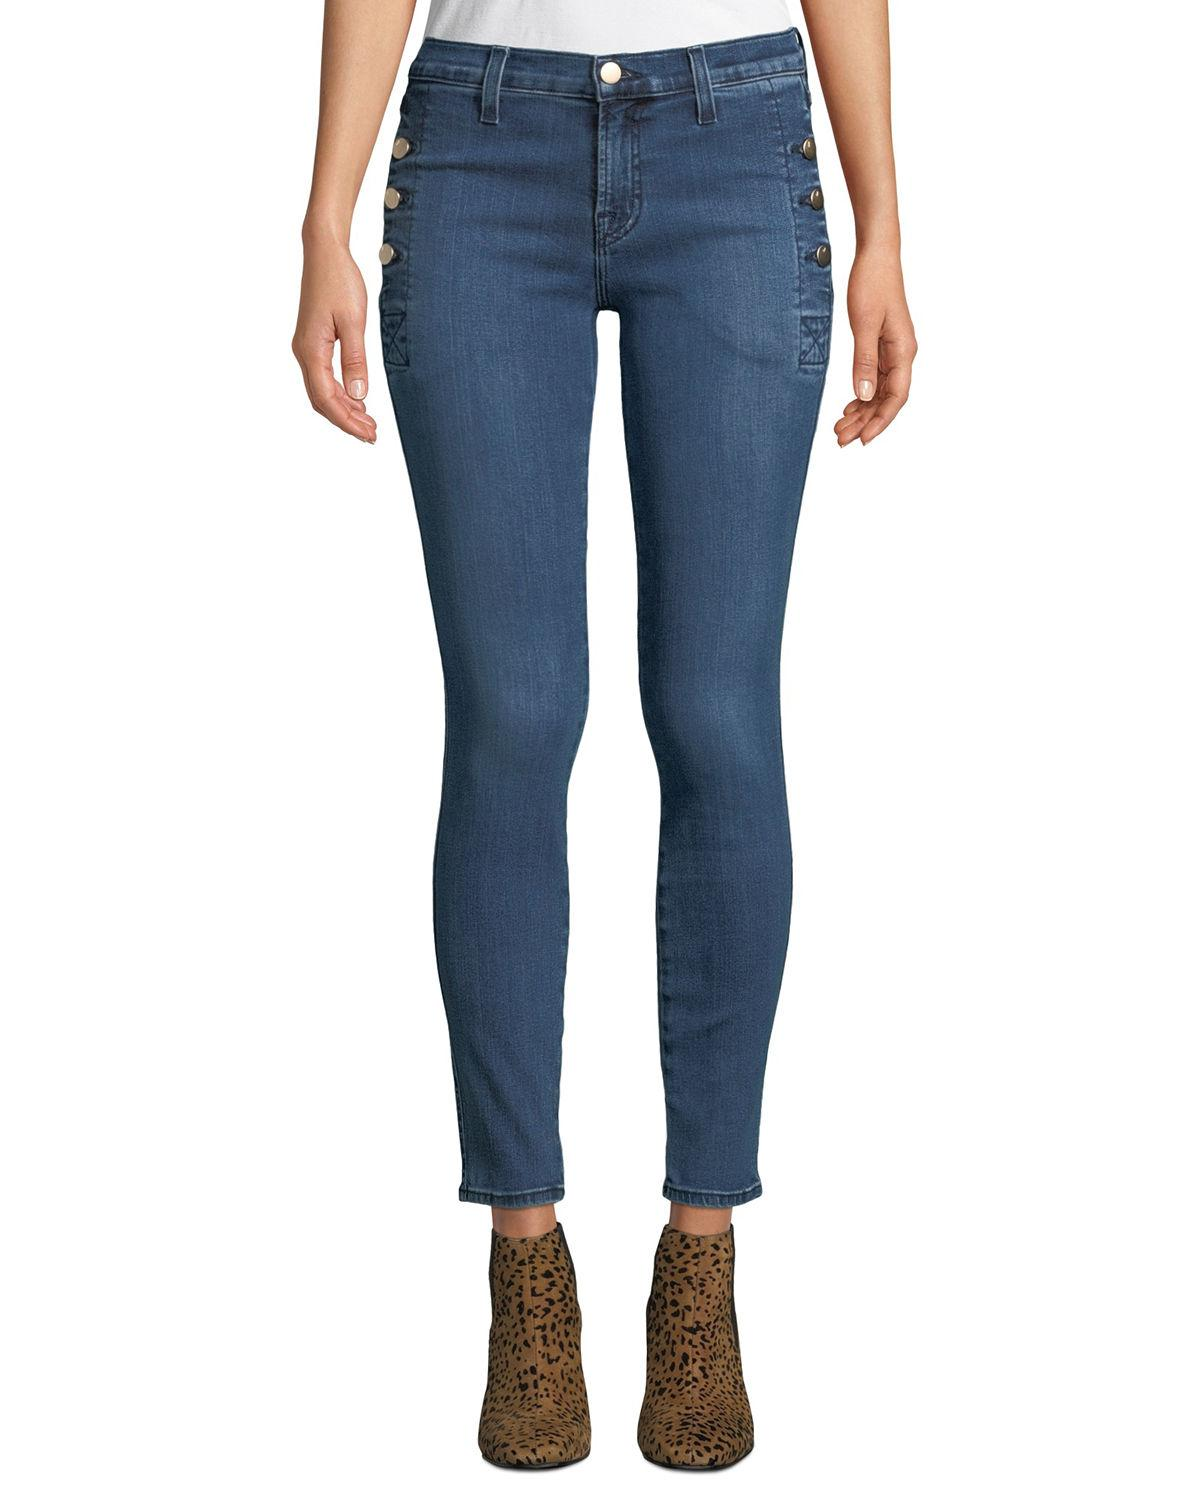 J Brand Zion Mid-rise Skinny W/ Button Pockets In Medium Blue